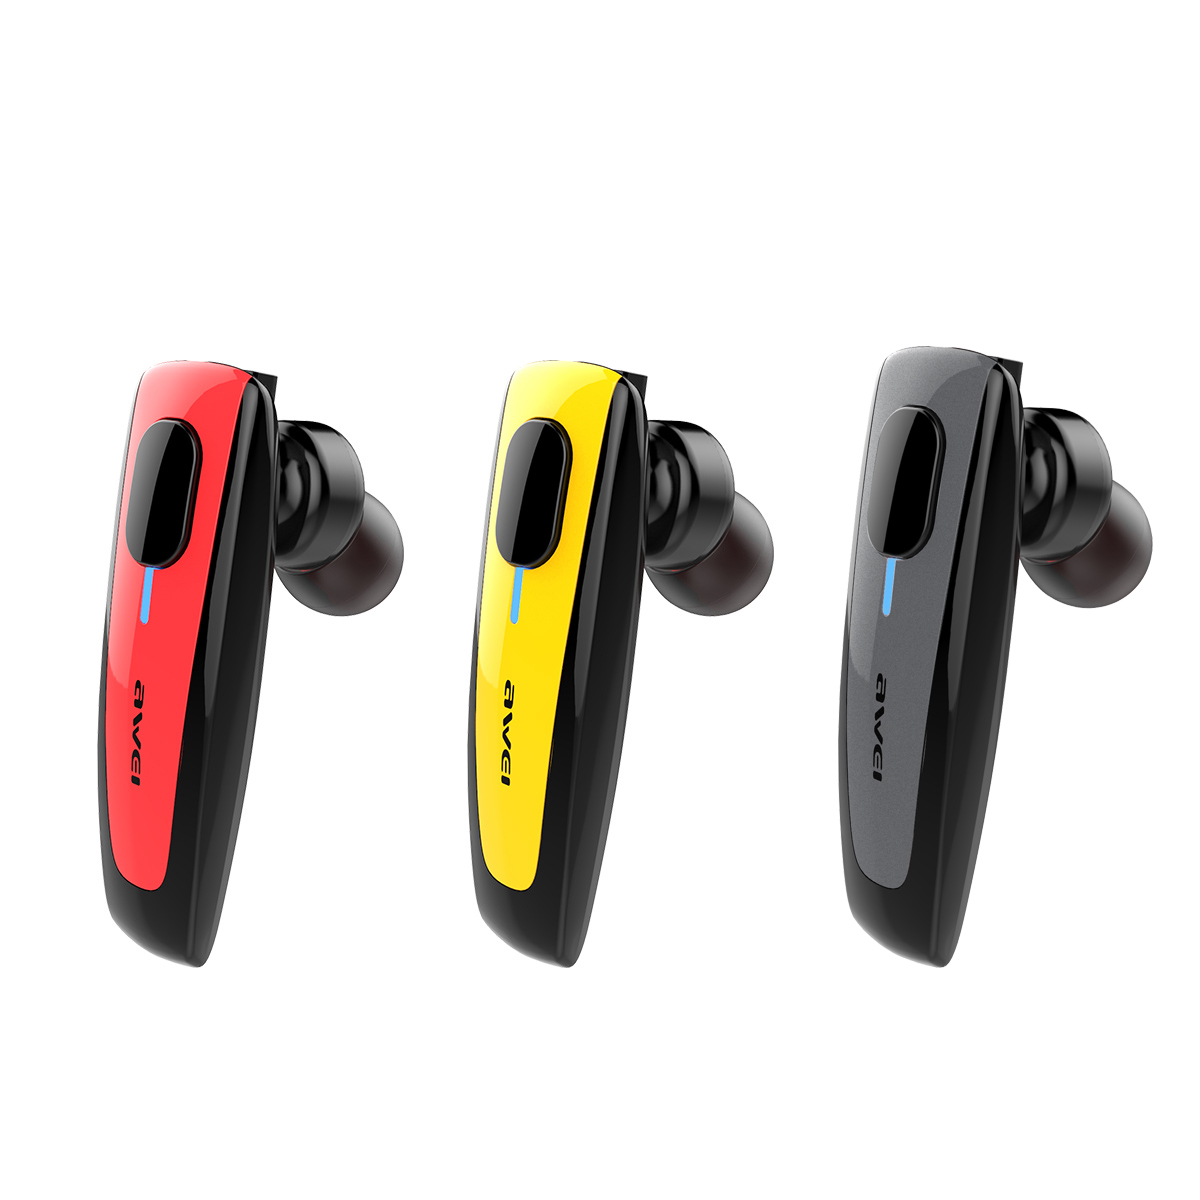 Bluetooth Headset Wireless Bluetooth 4.1 In Ear Earpiece Earphones Headphones with Noise Reduction Hands Free Mic for Office/Business/Workout/Driver/Trucker